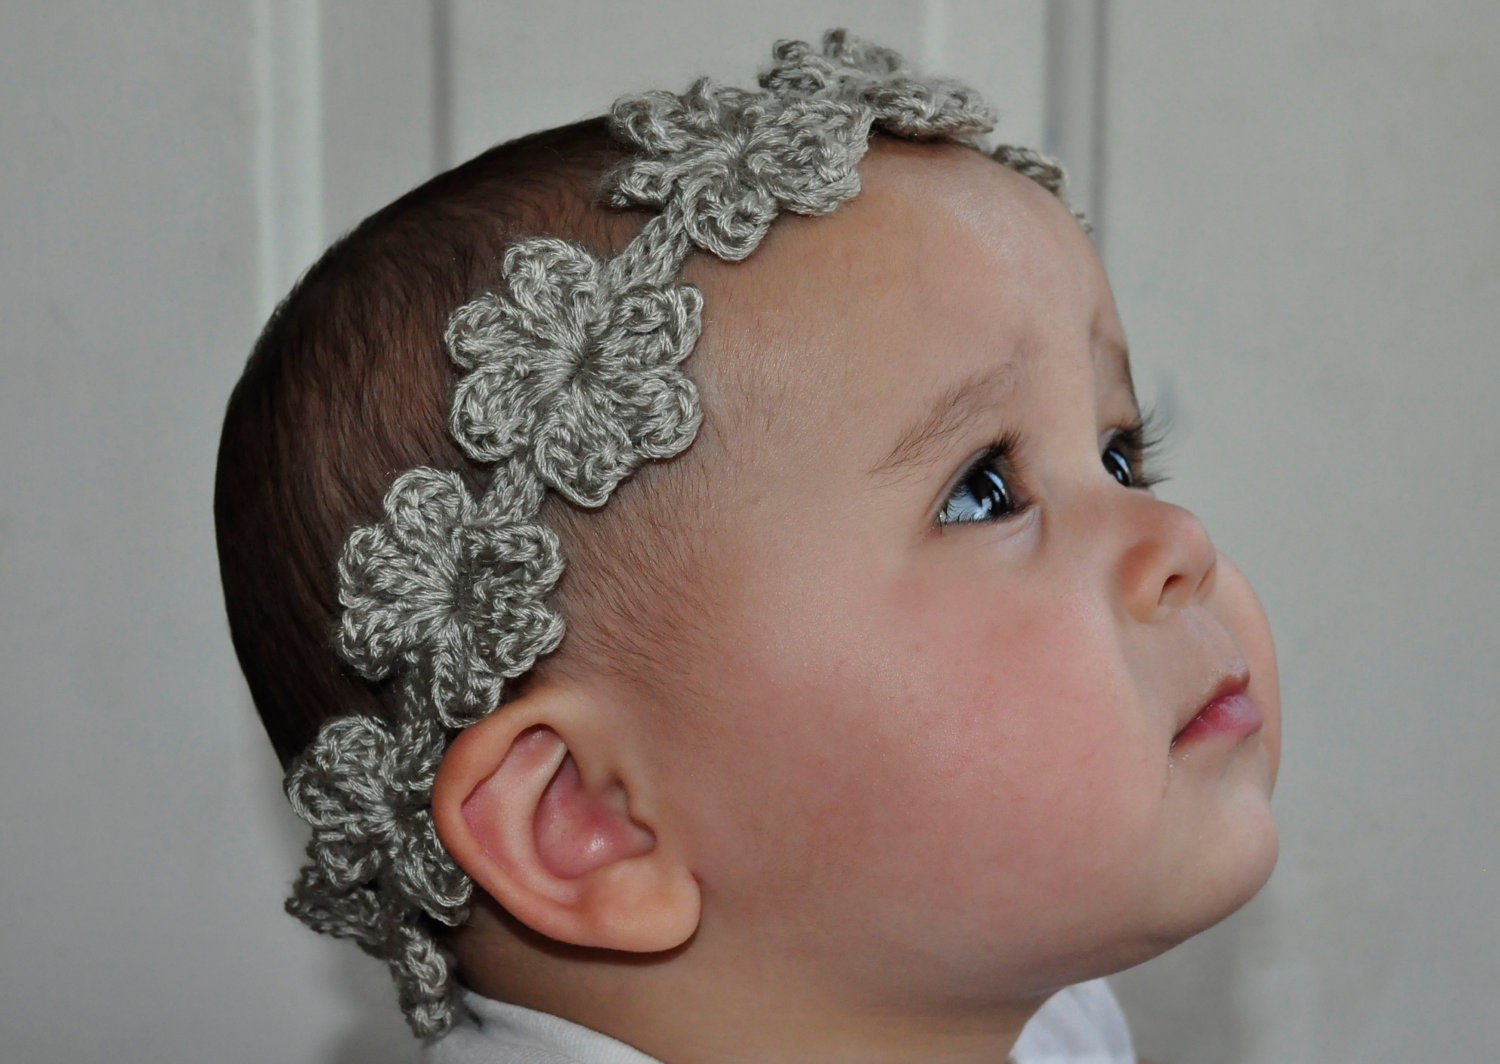 Free Crochet Pattern Flowers Headbands : Crochet Pattern PDF Headband / Bracelet Flower Garland